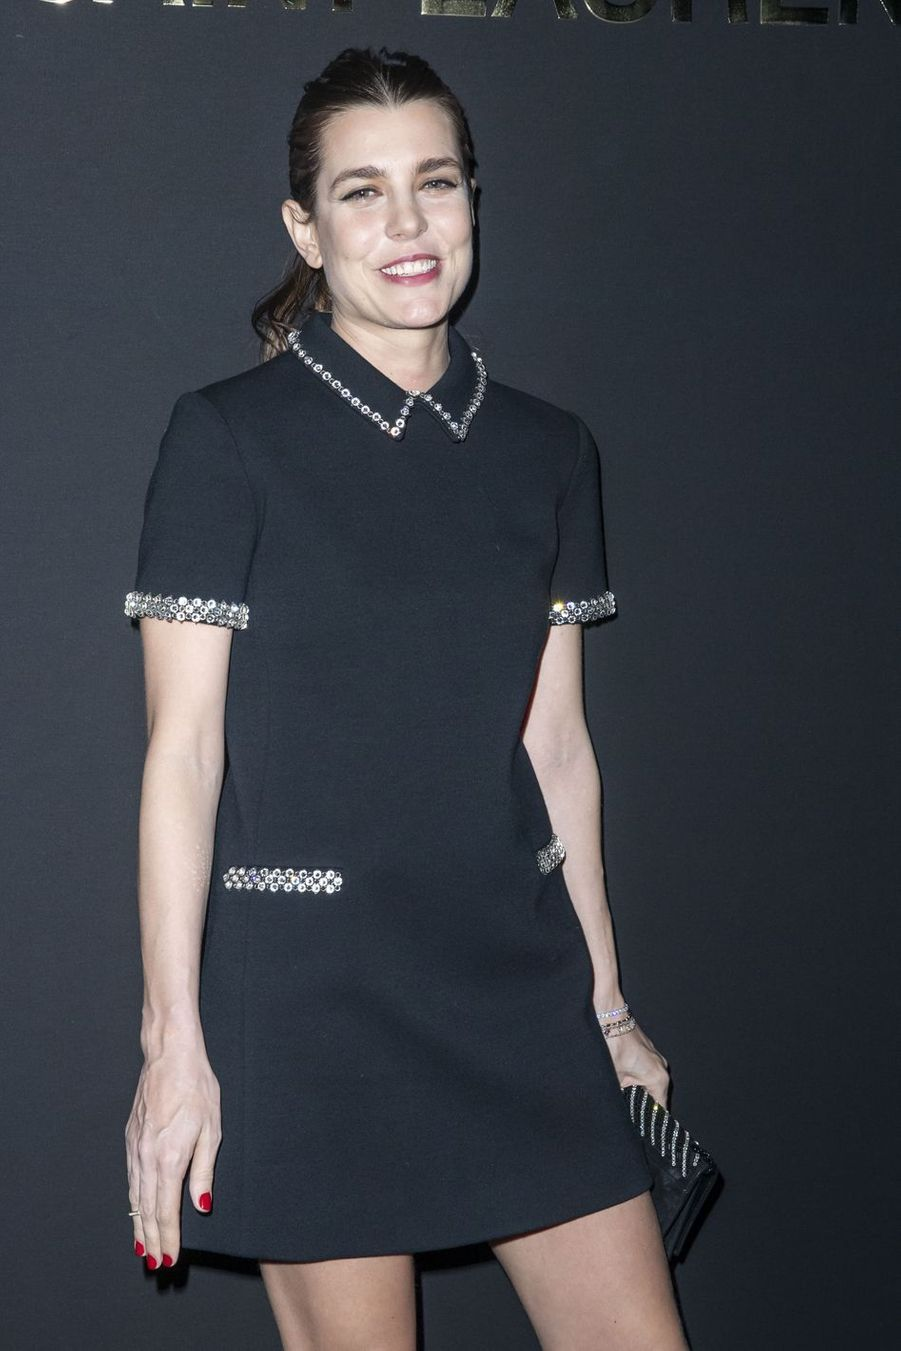 Charlotte Casiraghi au défilé Saint Laurent lors de la Fashion Week de Paris le 26 février 2019